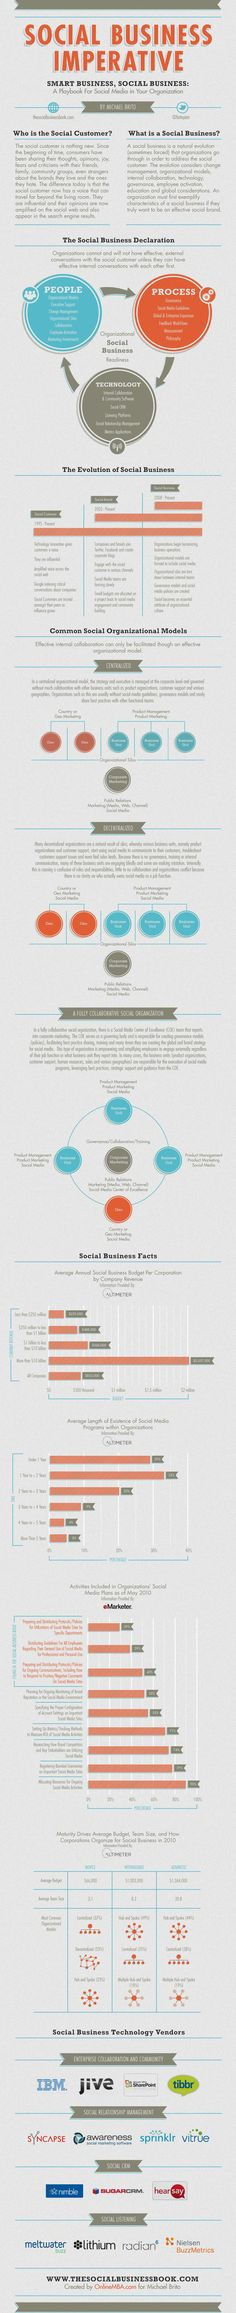 Social Business Imperative: Smart Business, Social Business - A Playbook for Social Media in Your Organization